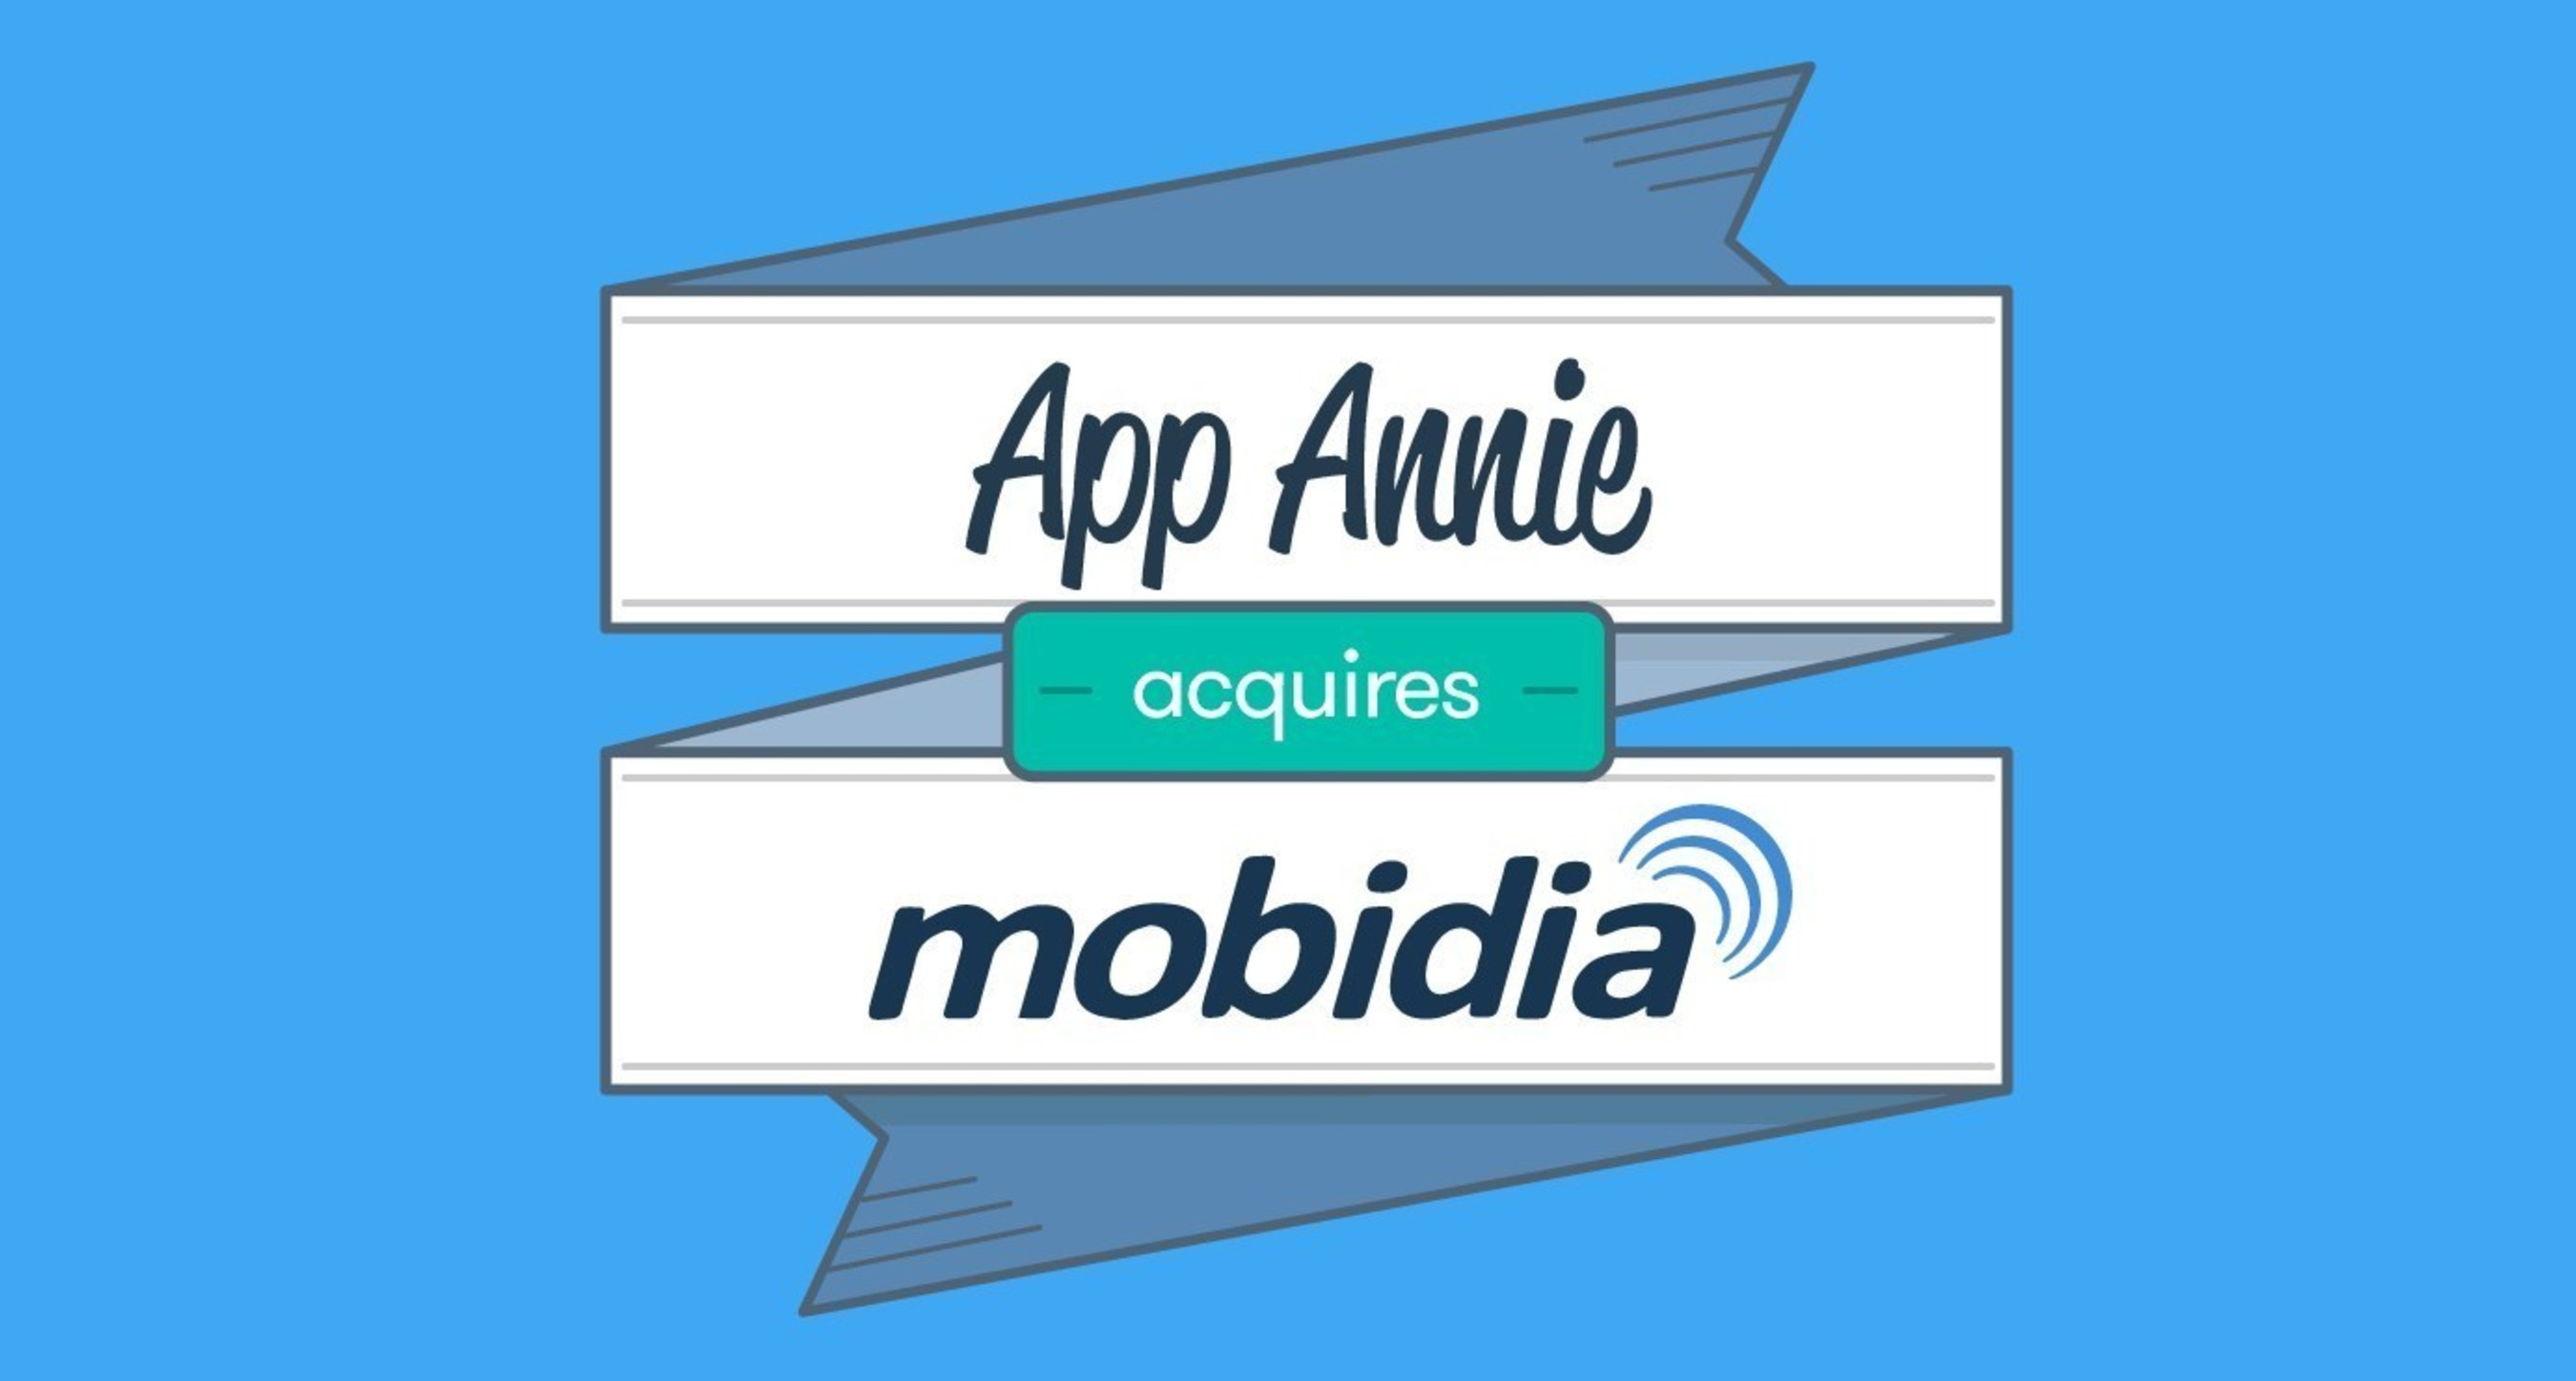 Mobile usage data in 60 countries, iOS & Android